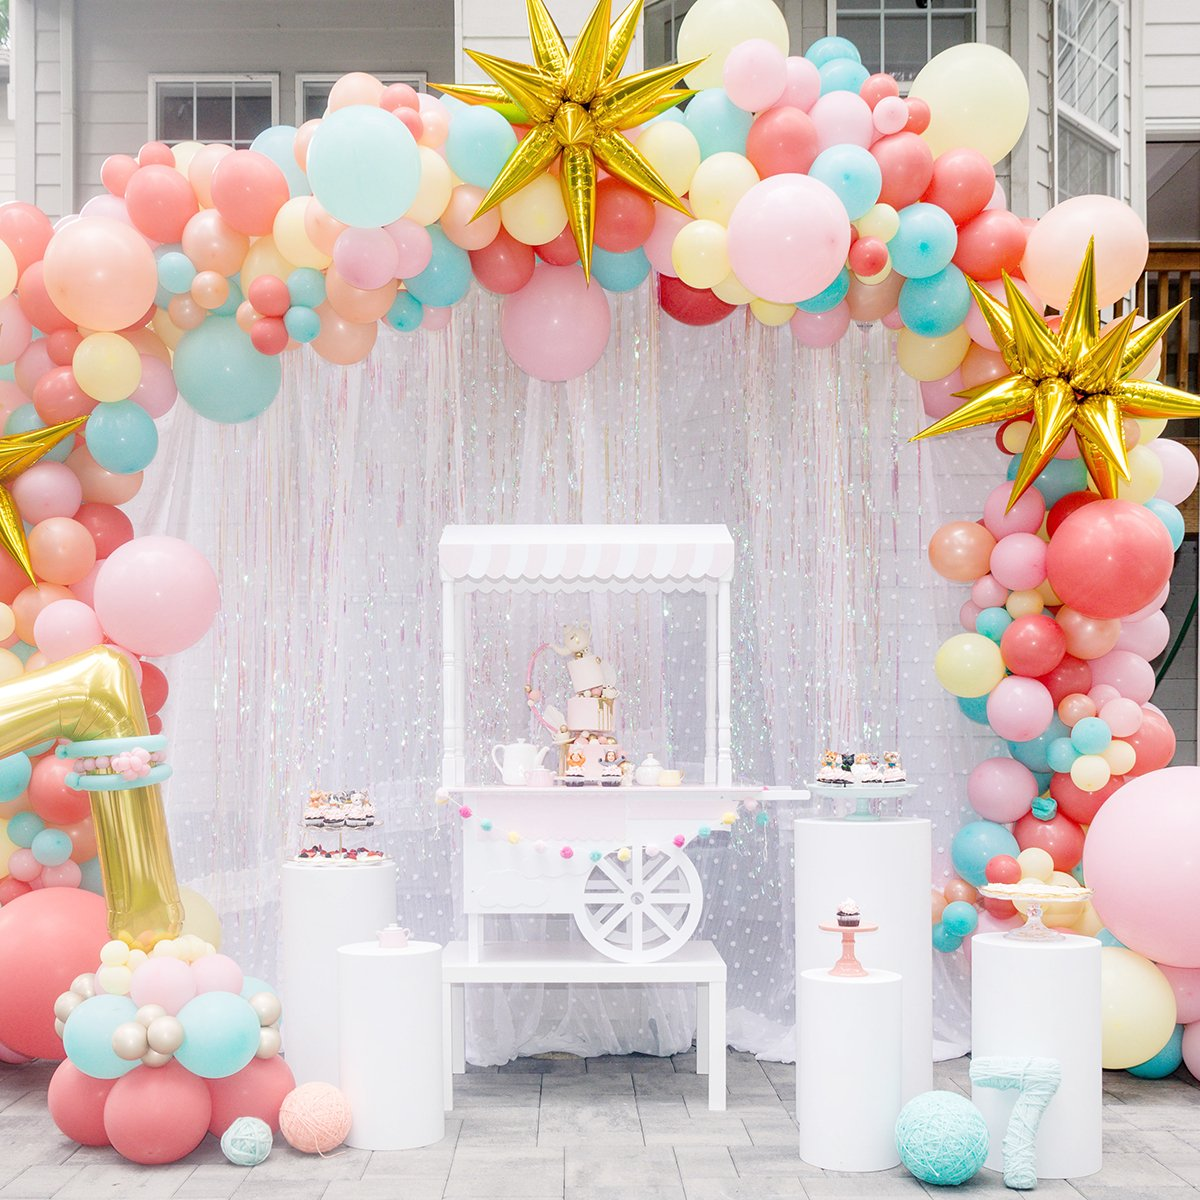 cake display with balloon arch